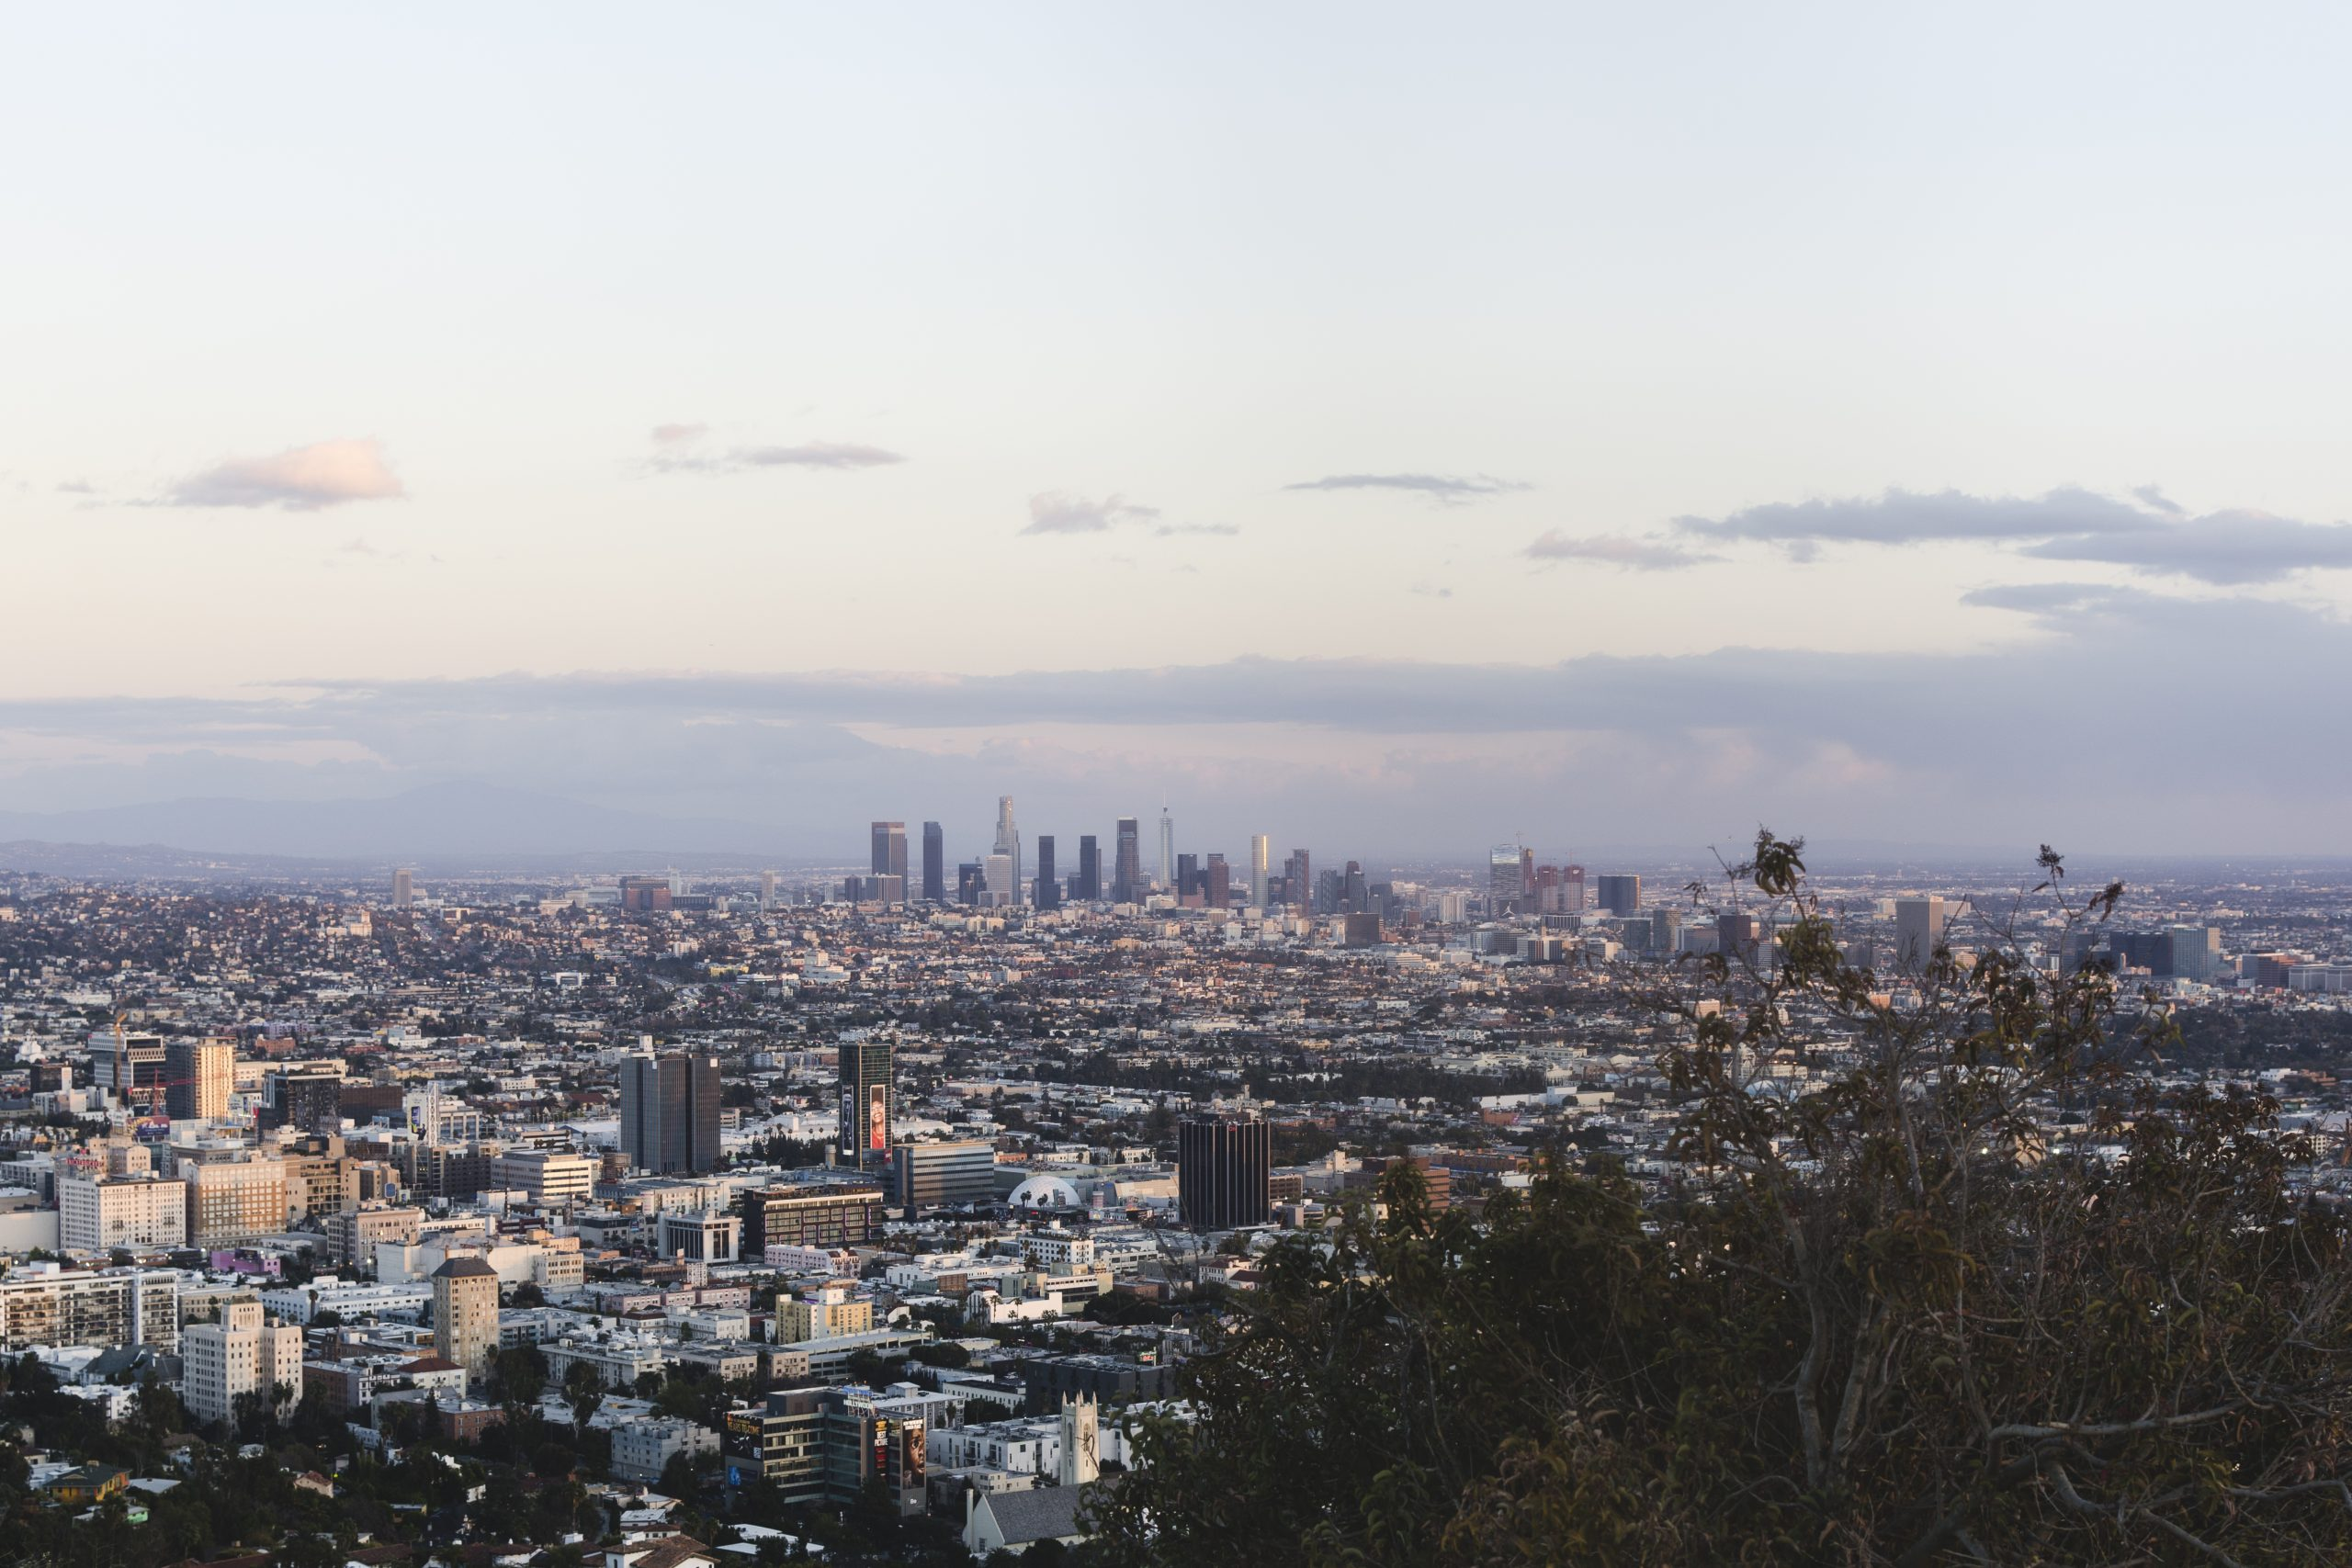 L.A. – The City I Call Home